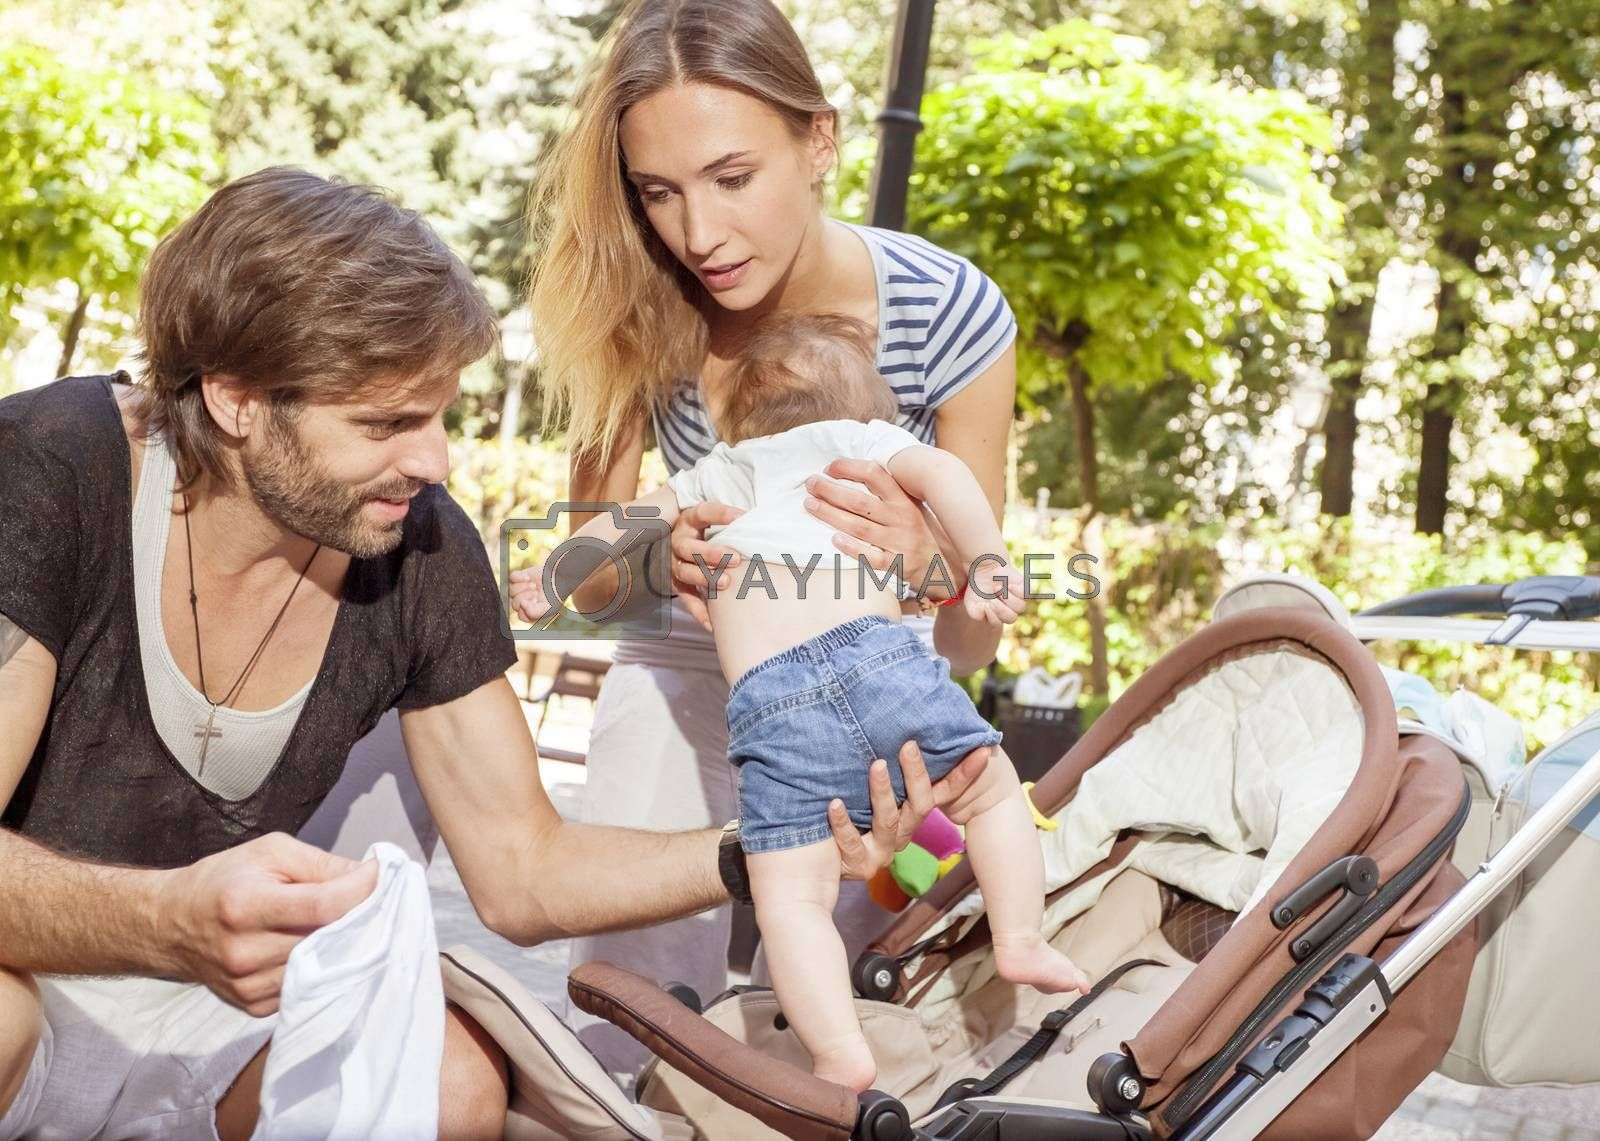 A young mother and a father are taking care of their baby on a sunny summer day.